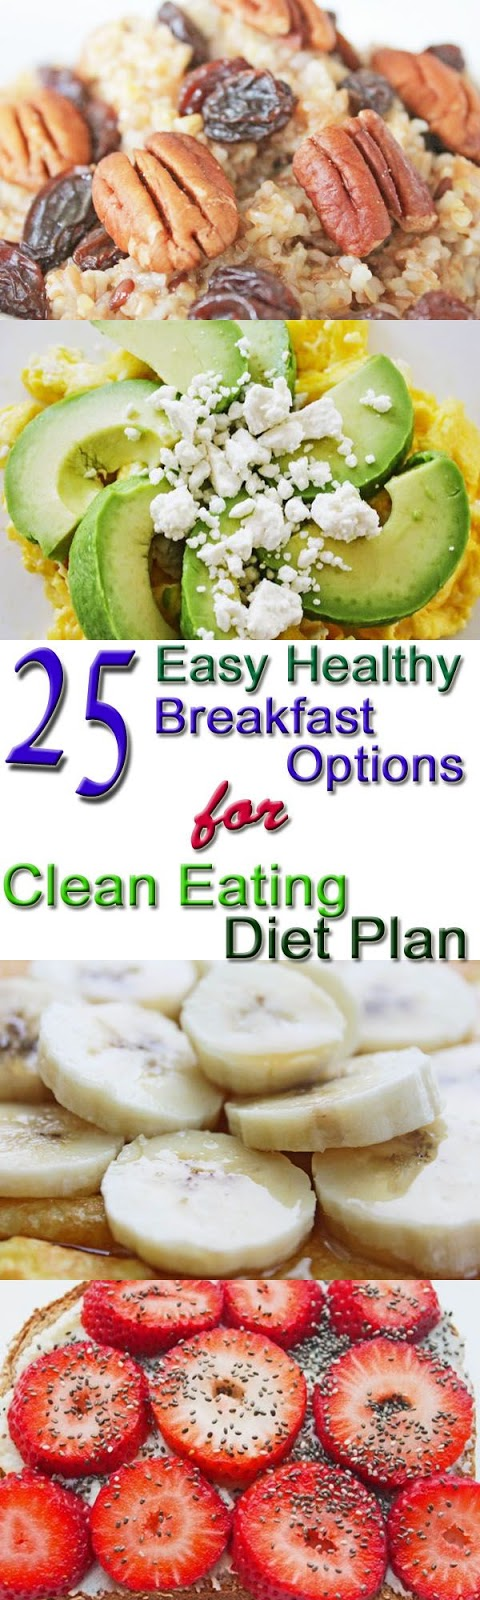 25 Healthy Breakfast Options for Clean Eating Diet Plan